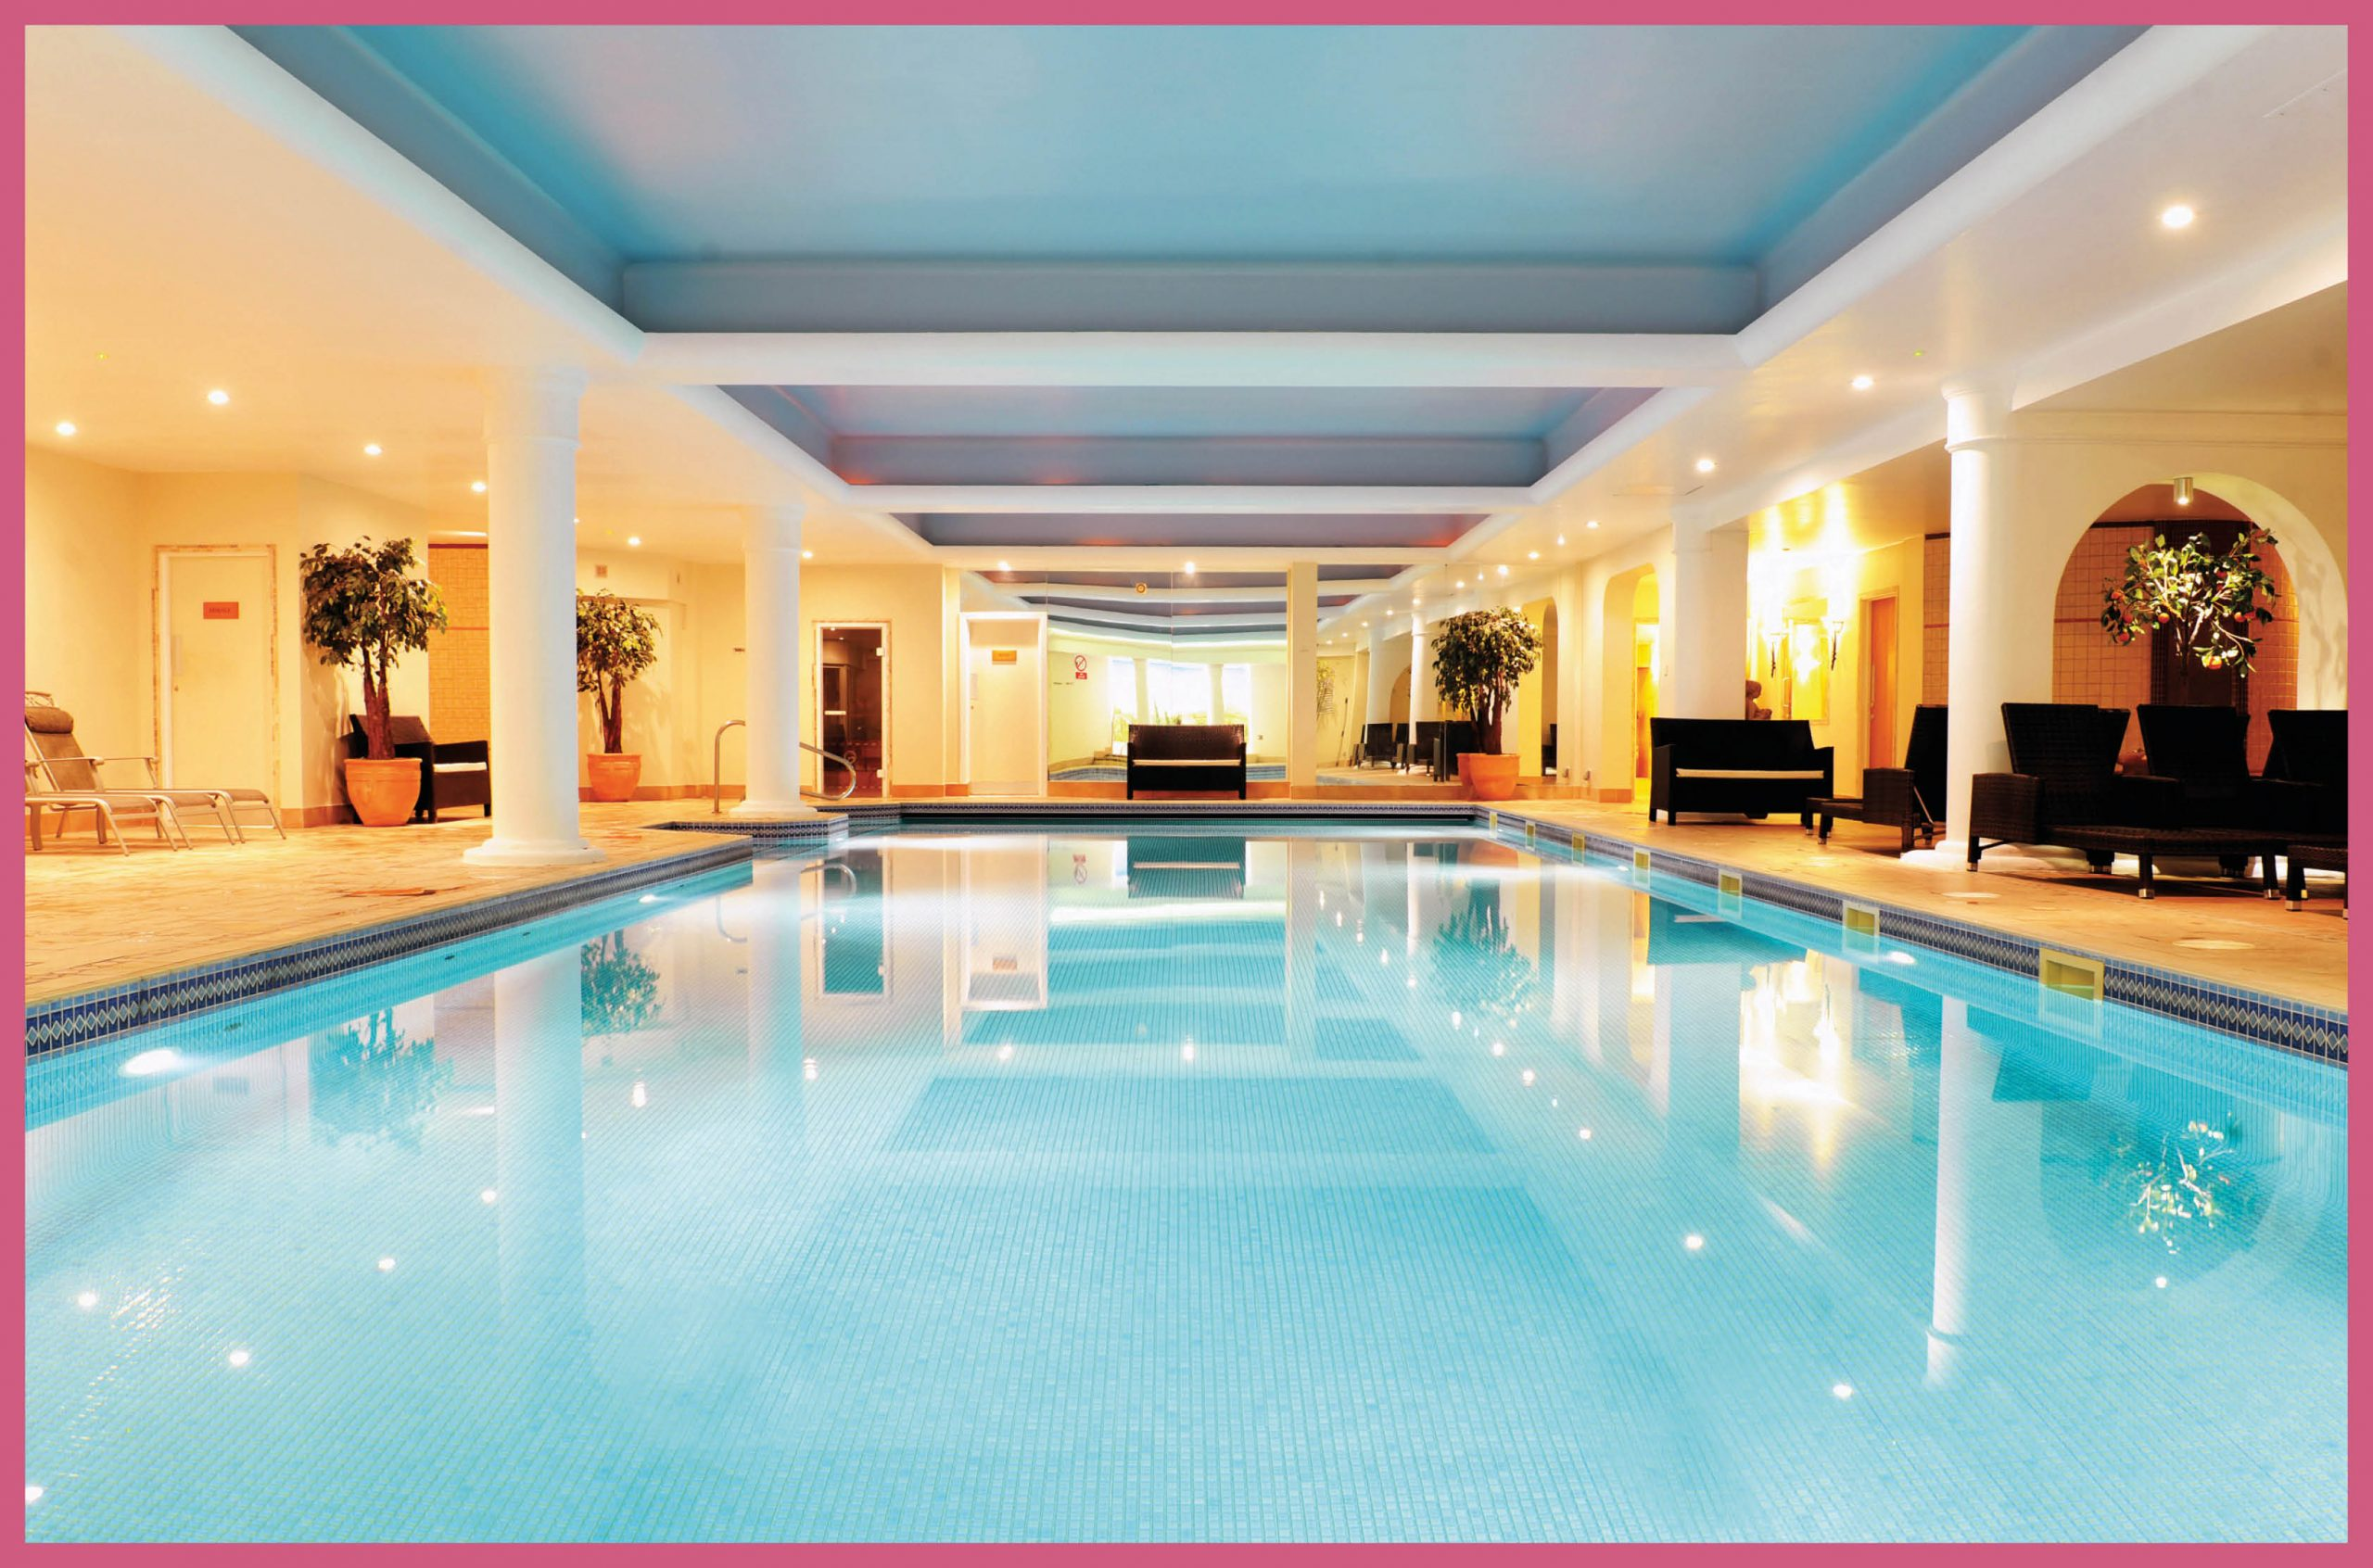 5% discount off Spa Treatments and Spa Days